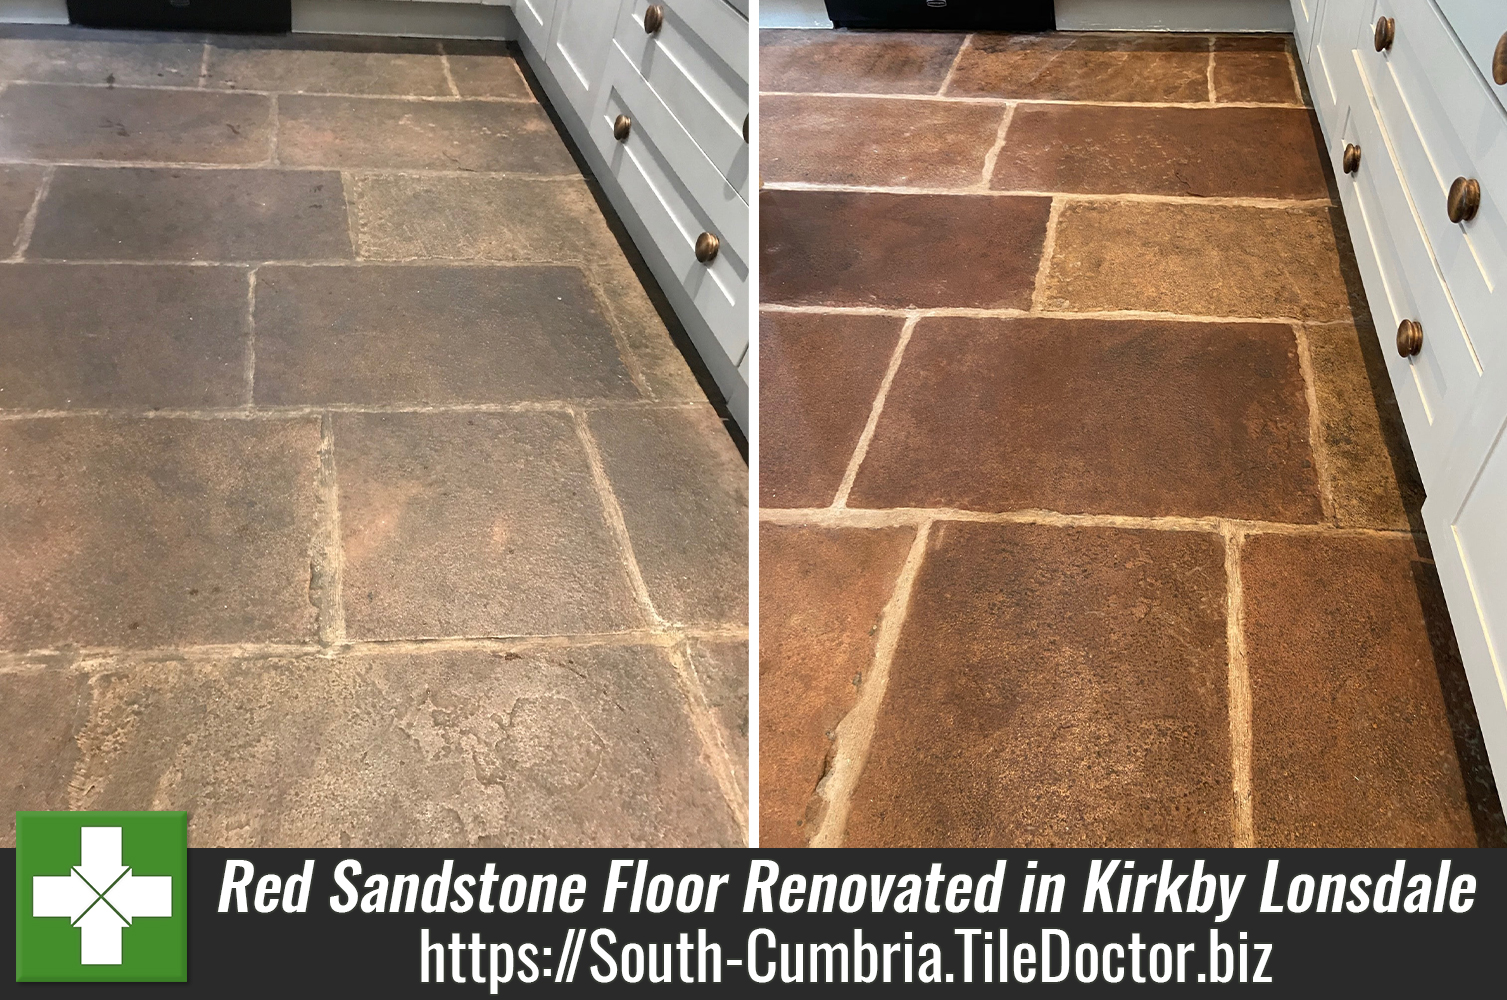 Red-Sandstone-Kitchen-Floor-Flagstones-Before-After-Renovation-Kirkby Lonsdale